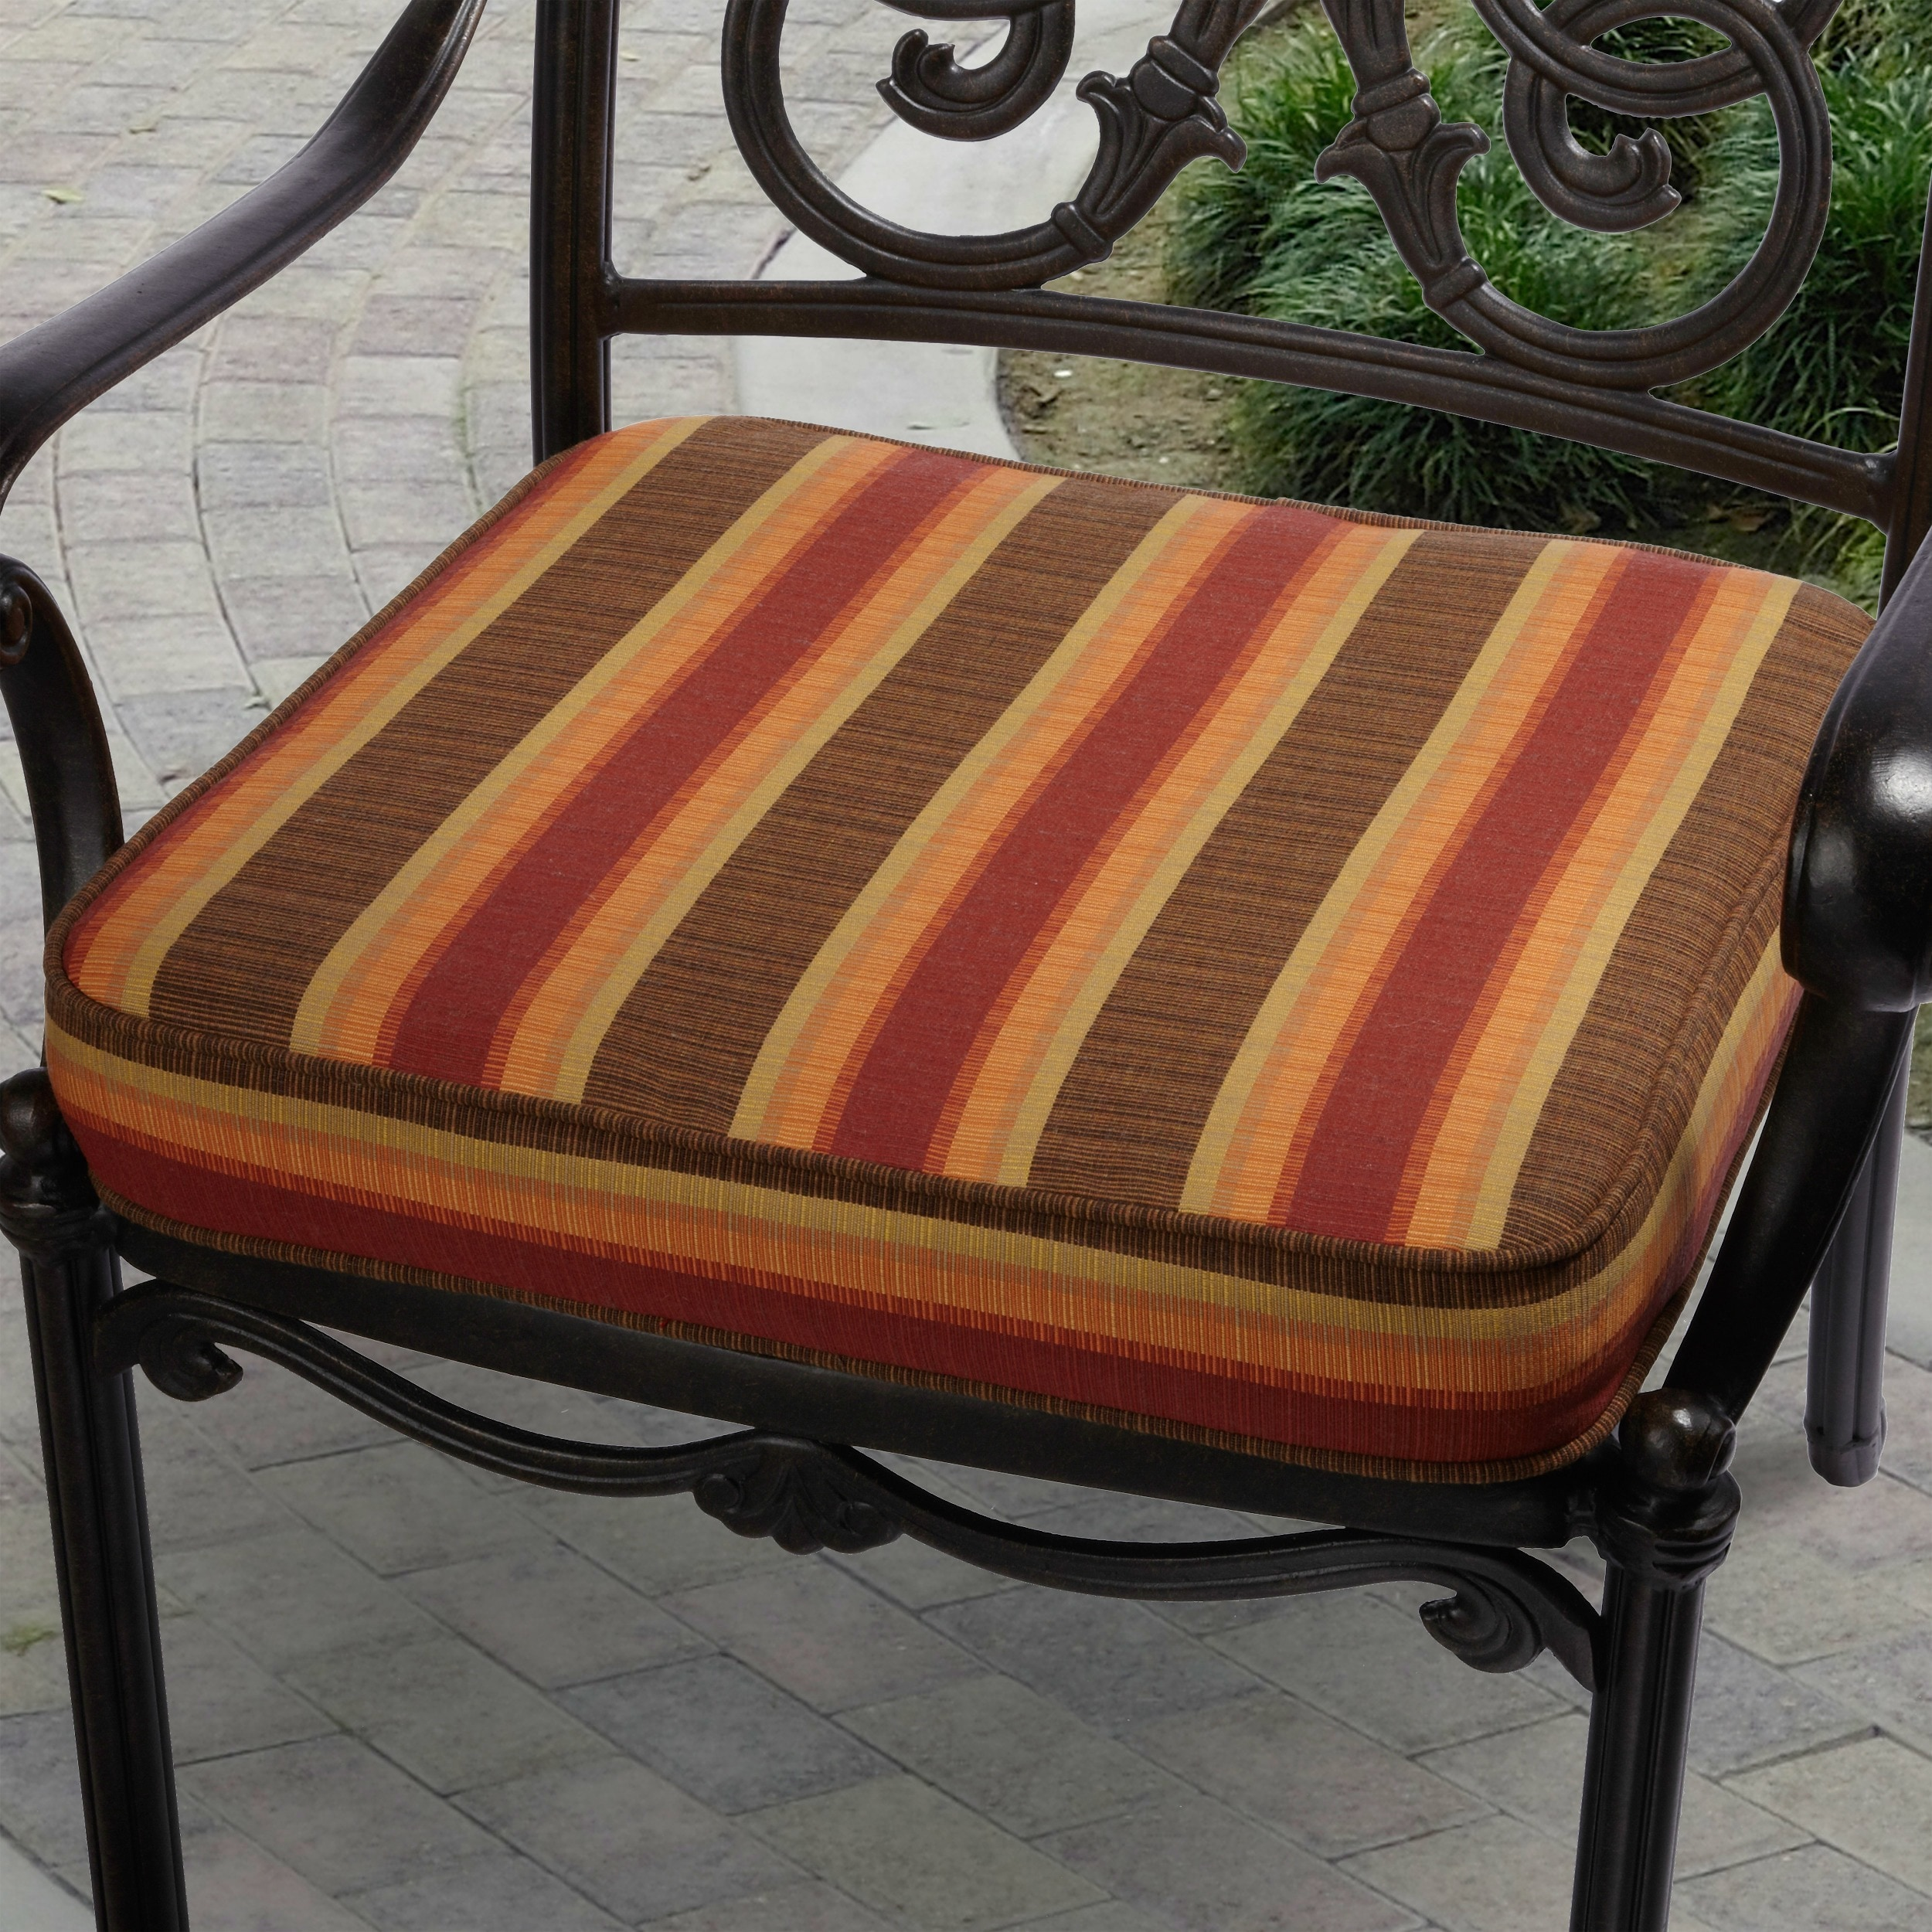 Indoor Outdoor 20 inch Striped Chair Cushion with Sunbrella